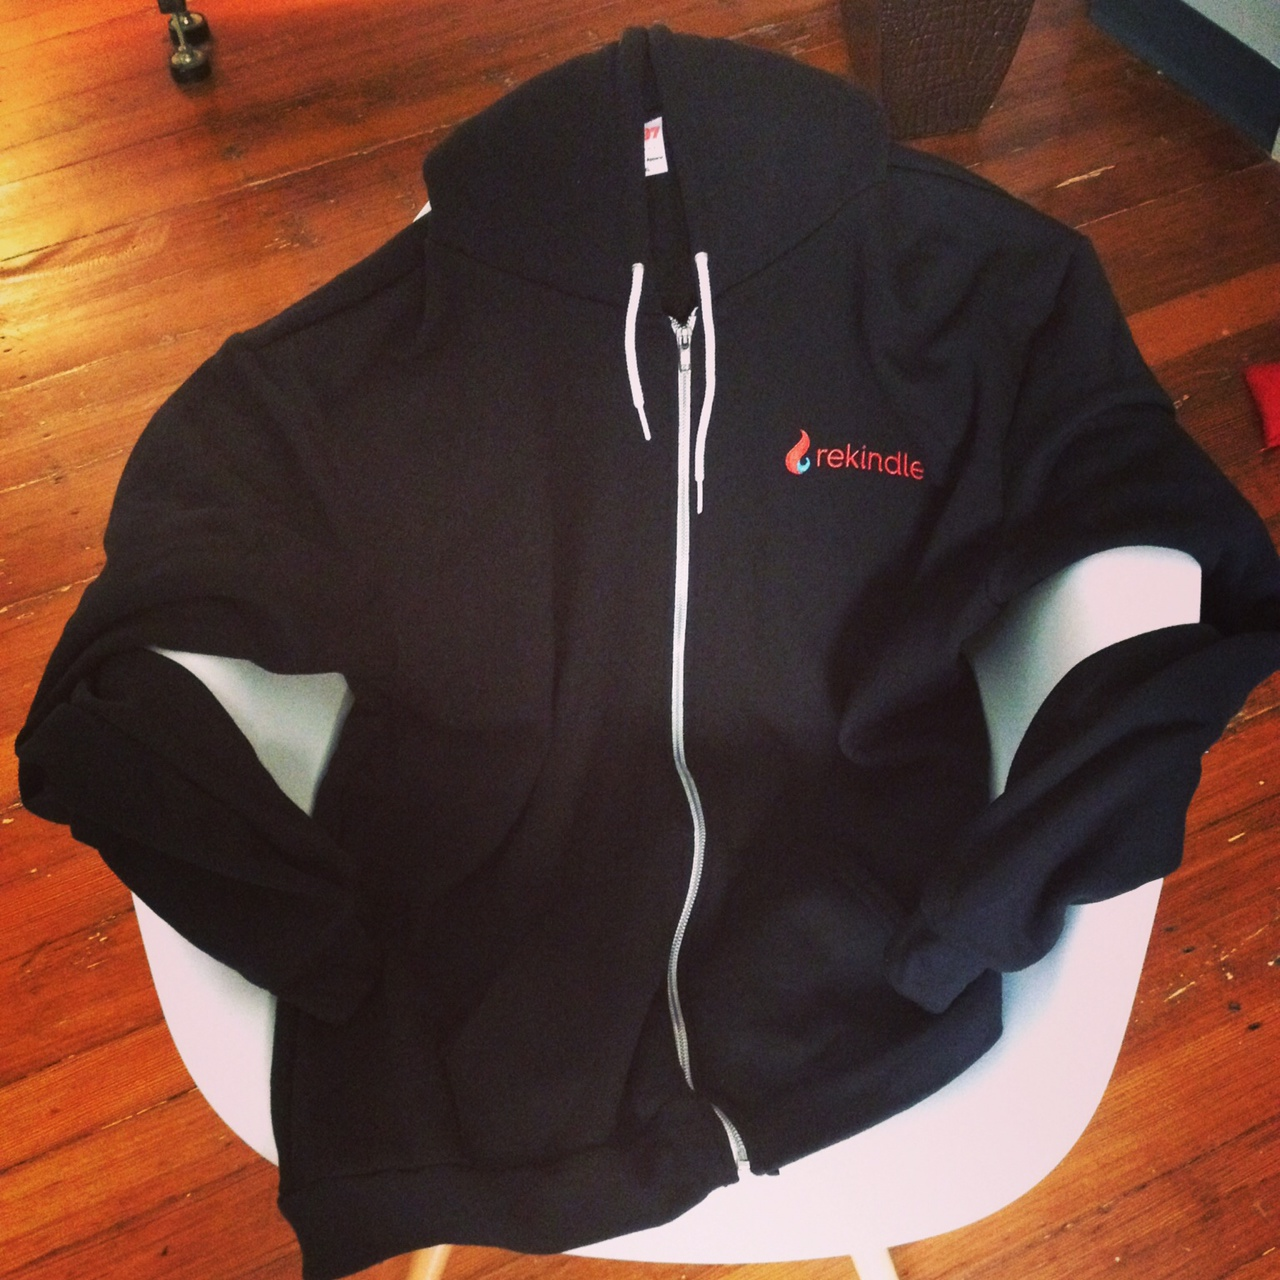 Boston's most coveted startup swag, and the stories behind it